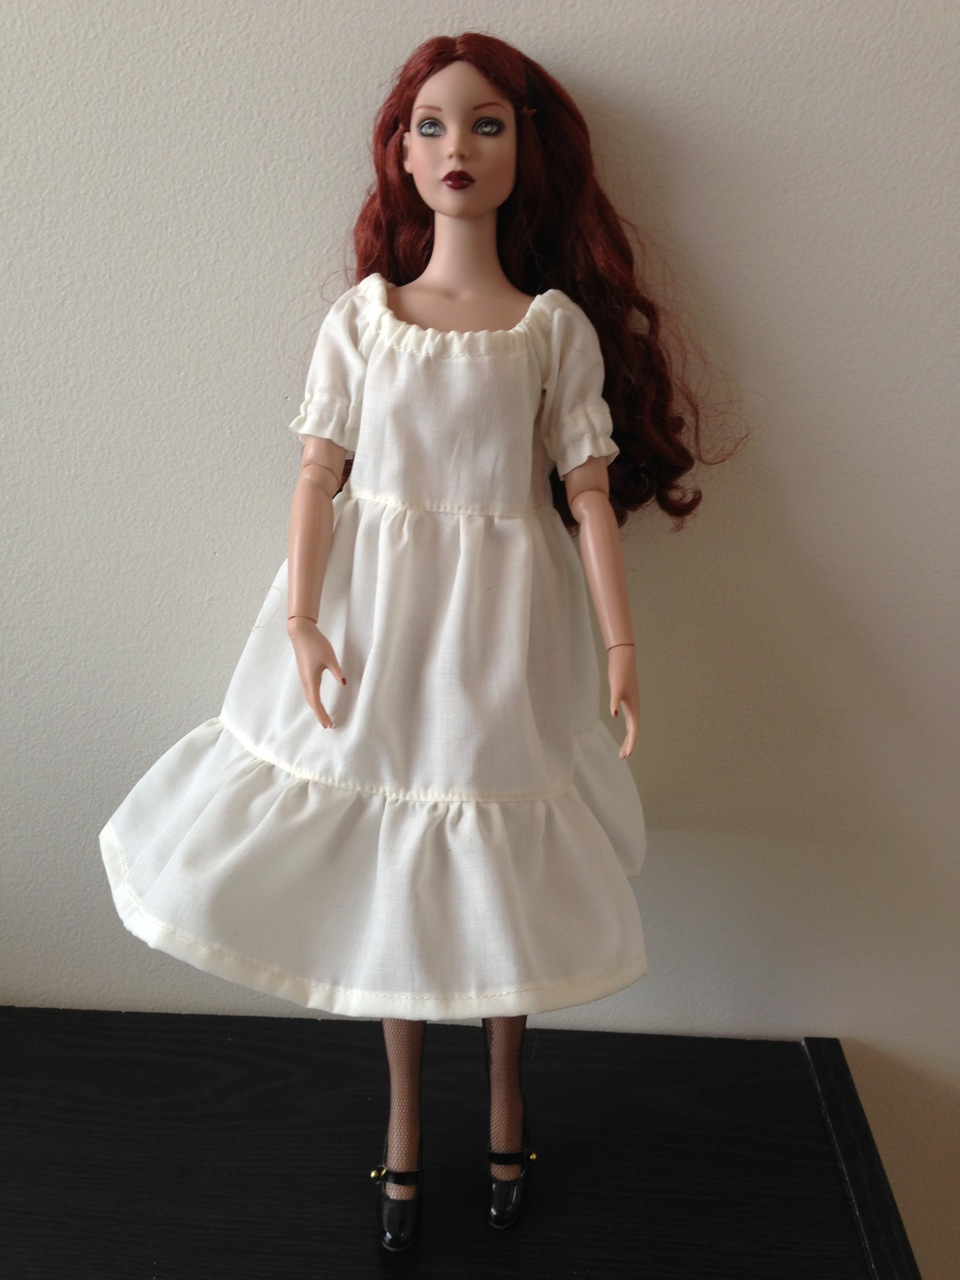 Old fashioned doll clothes 20